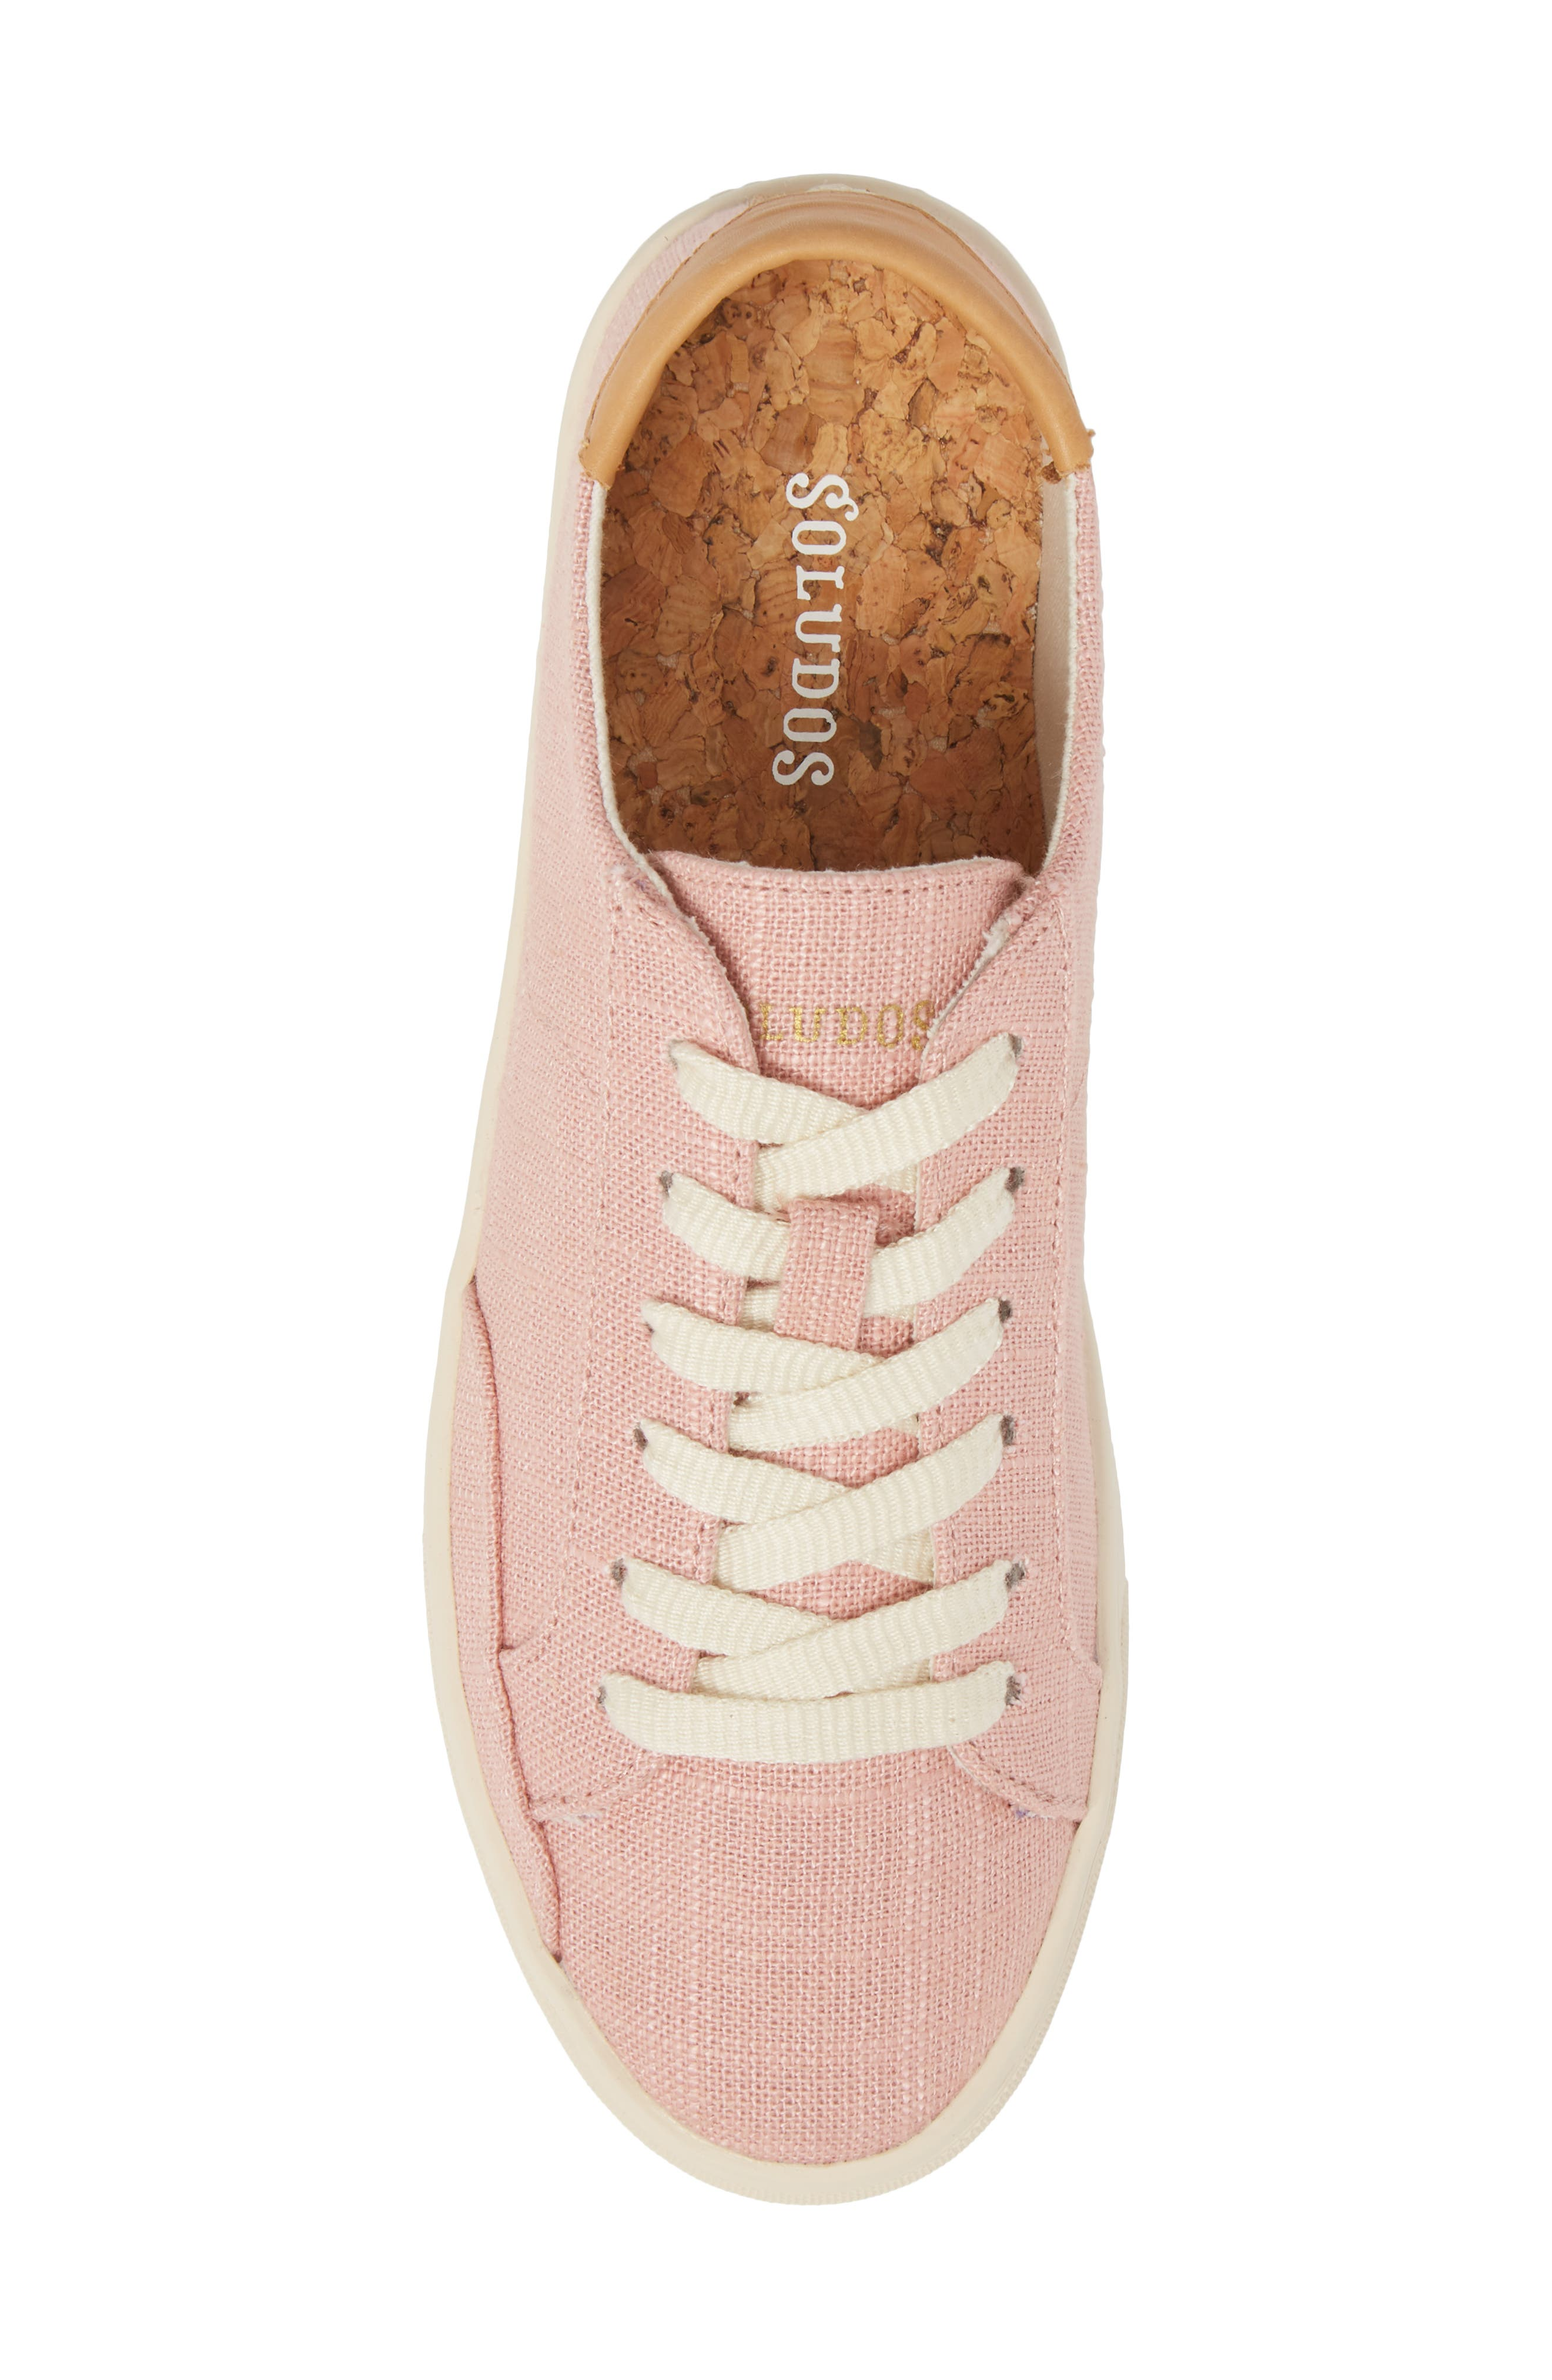 Ibiza Sneaker,                             Alternate thumbnail 5, color,                             Dusty Rose Fabric